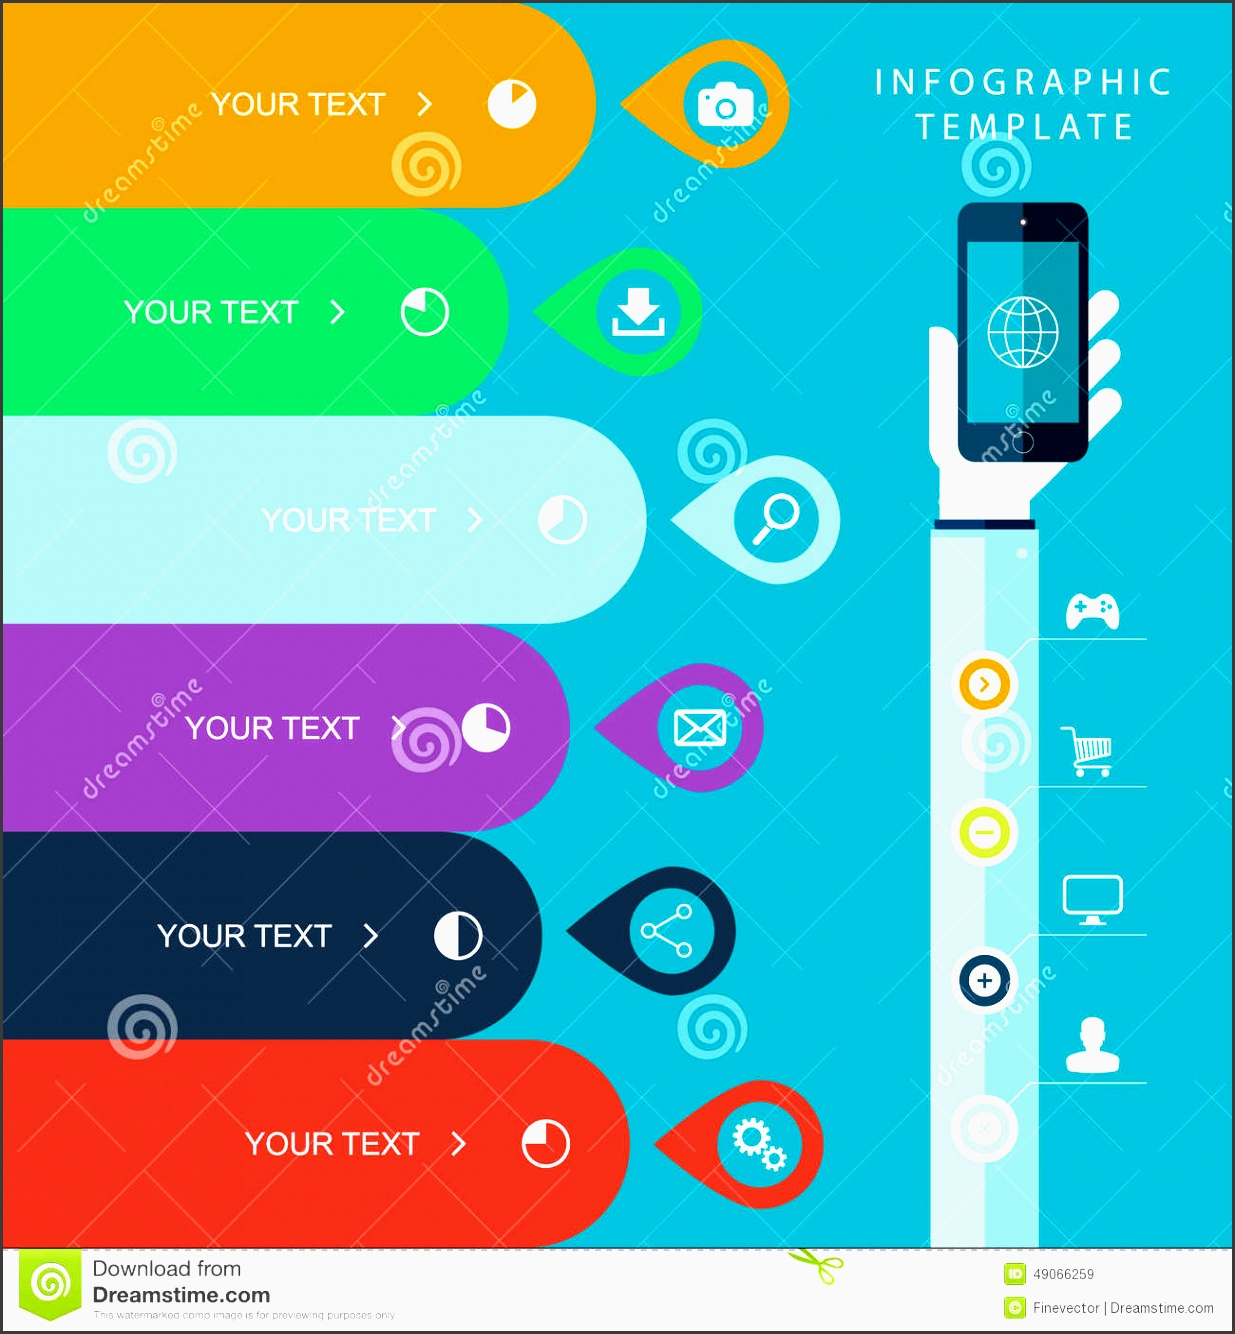 info graphic template with hand holding phones for marketing plan sales chart illustration work flow layout diagram